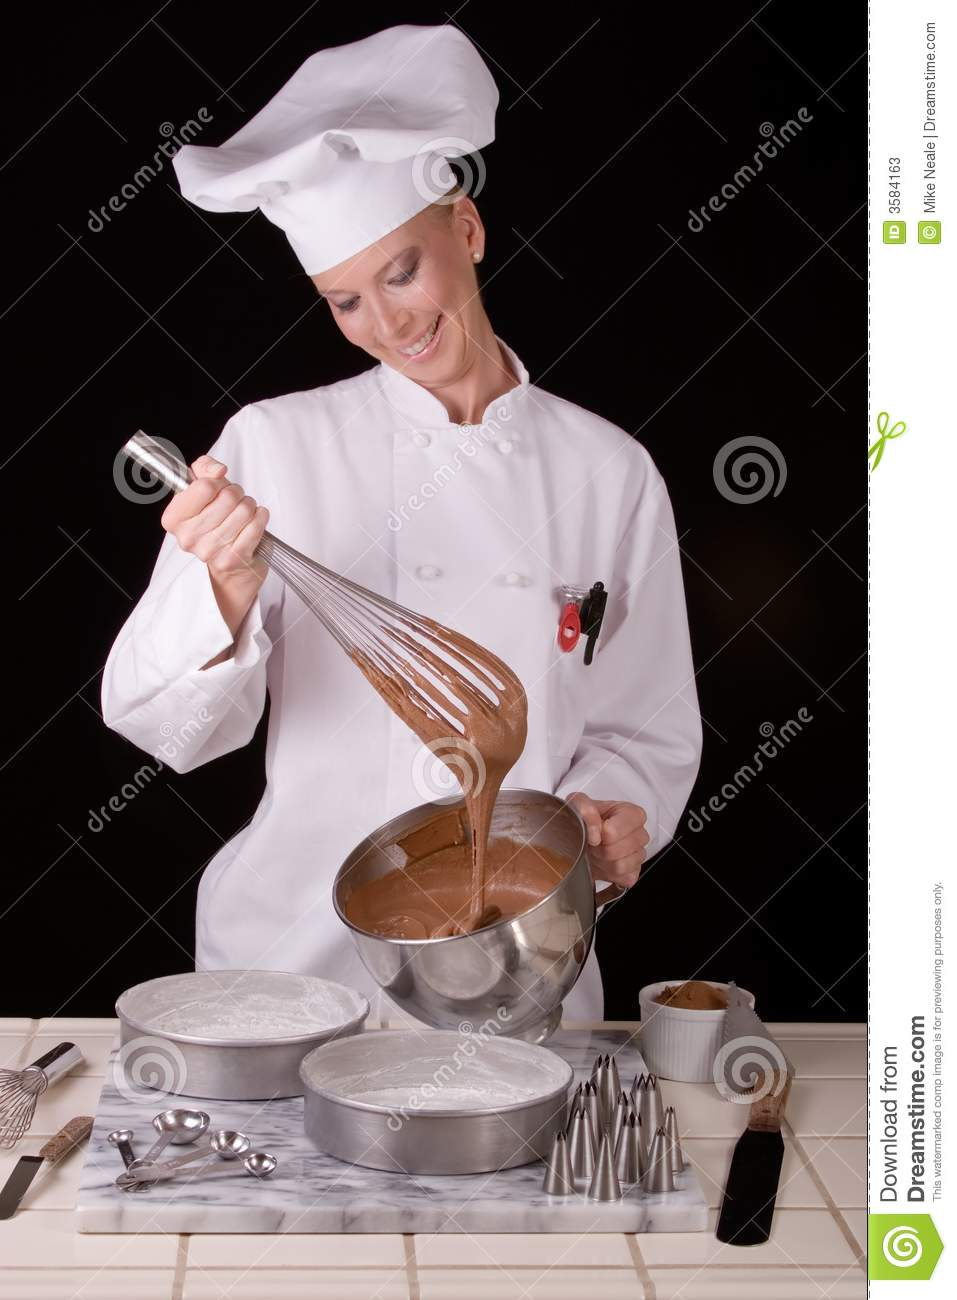 Chef Whisks Cake Batter Stock Image Image Of Girl Chef